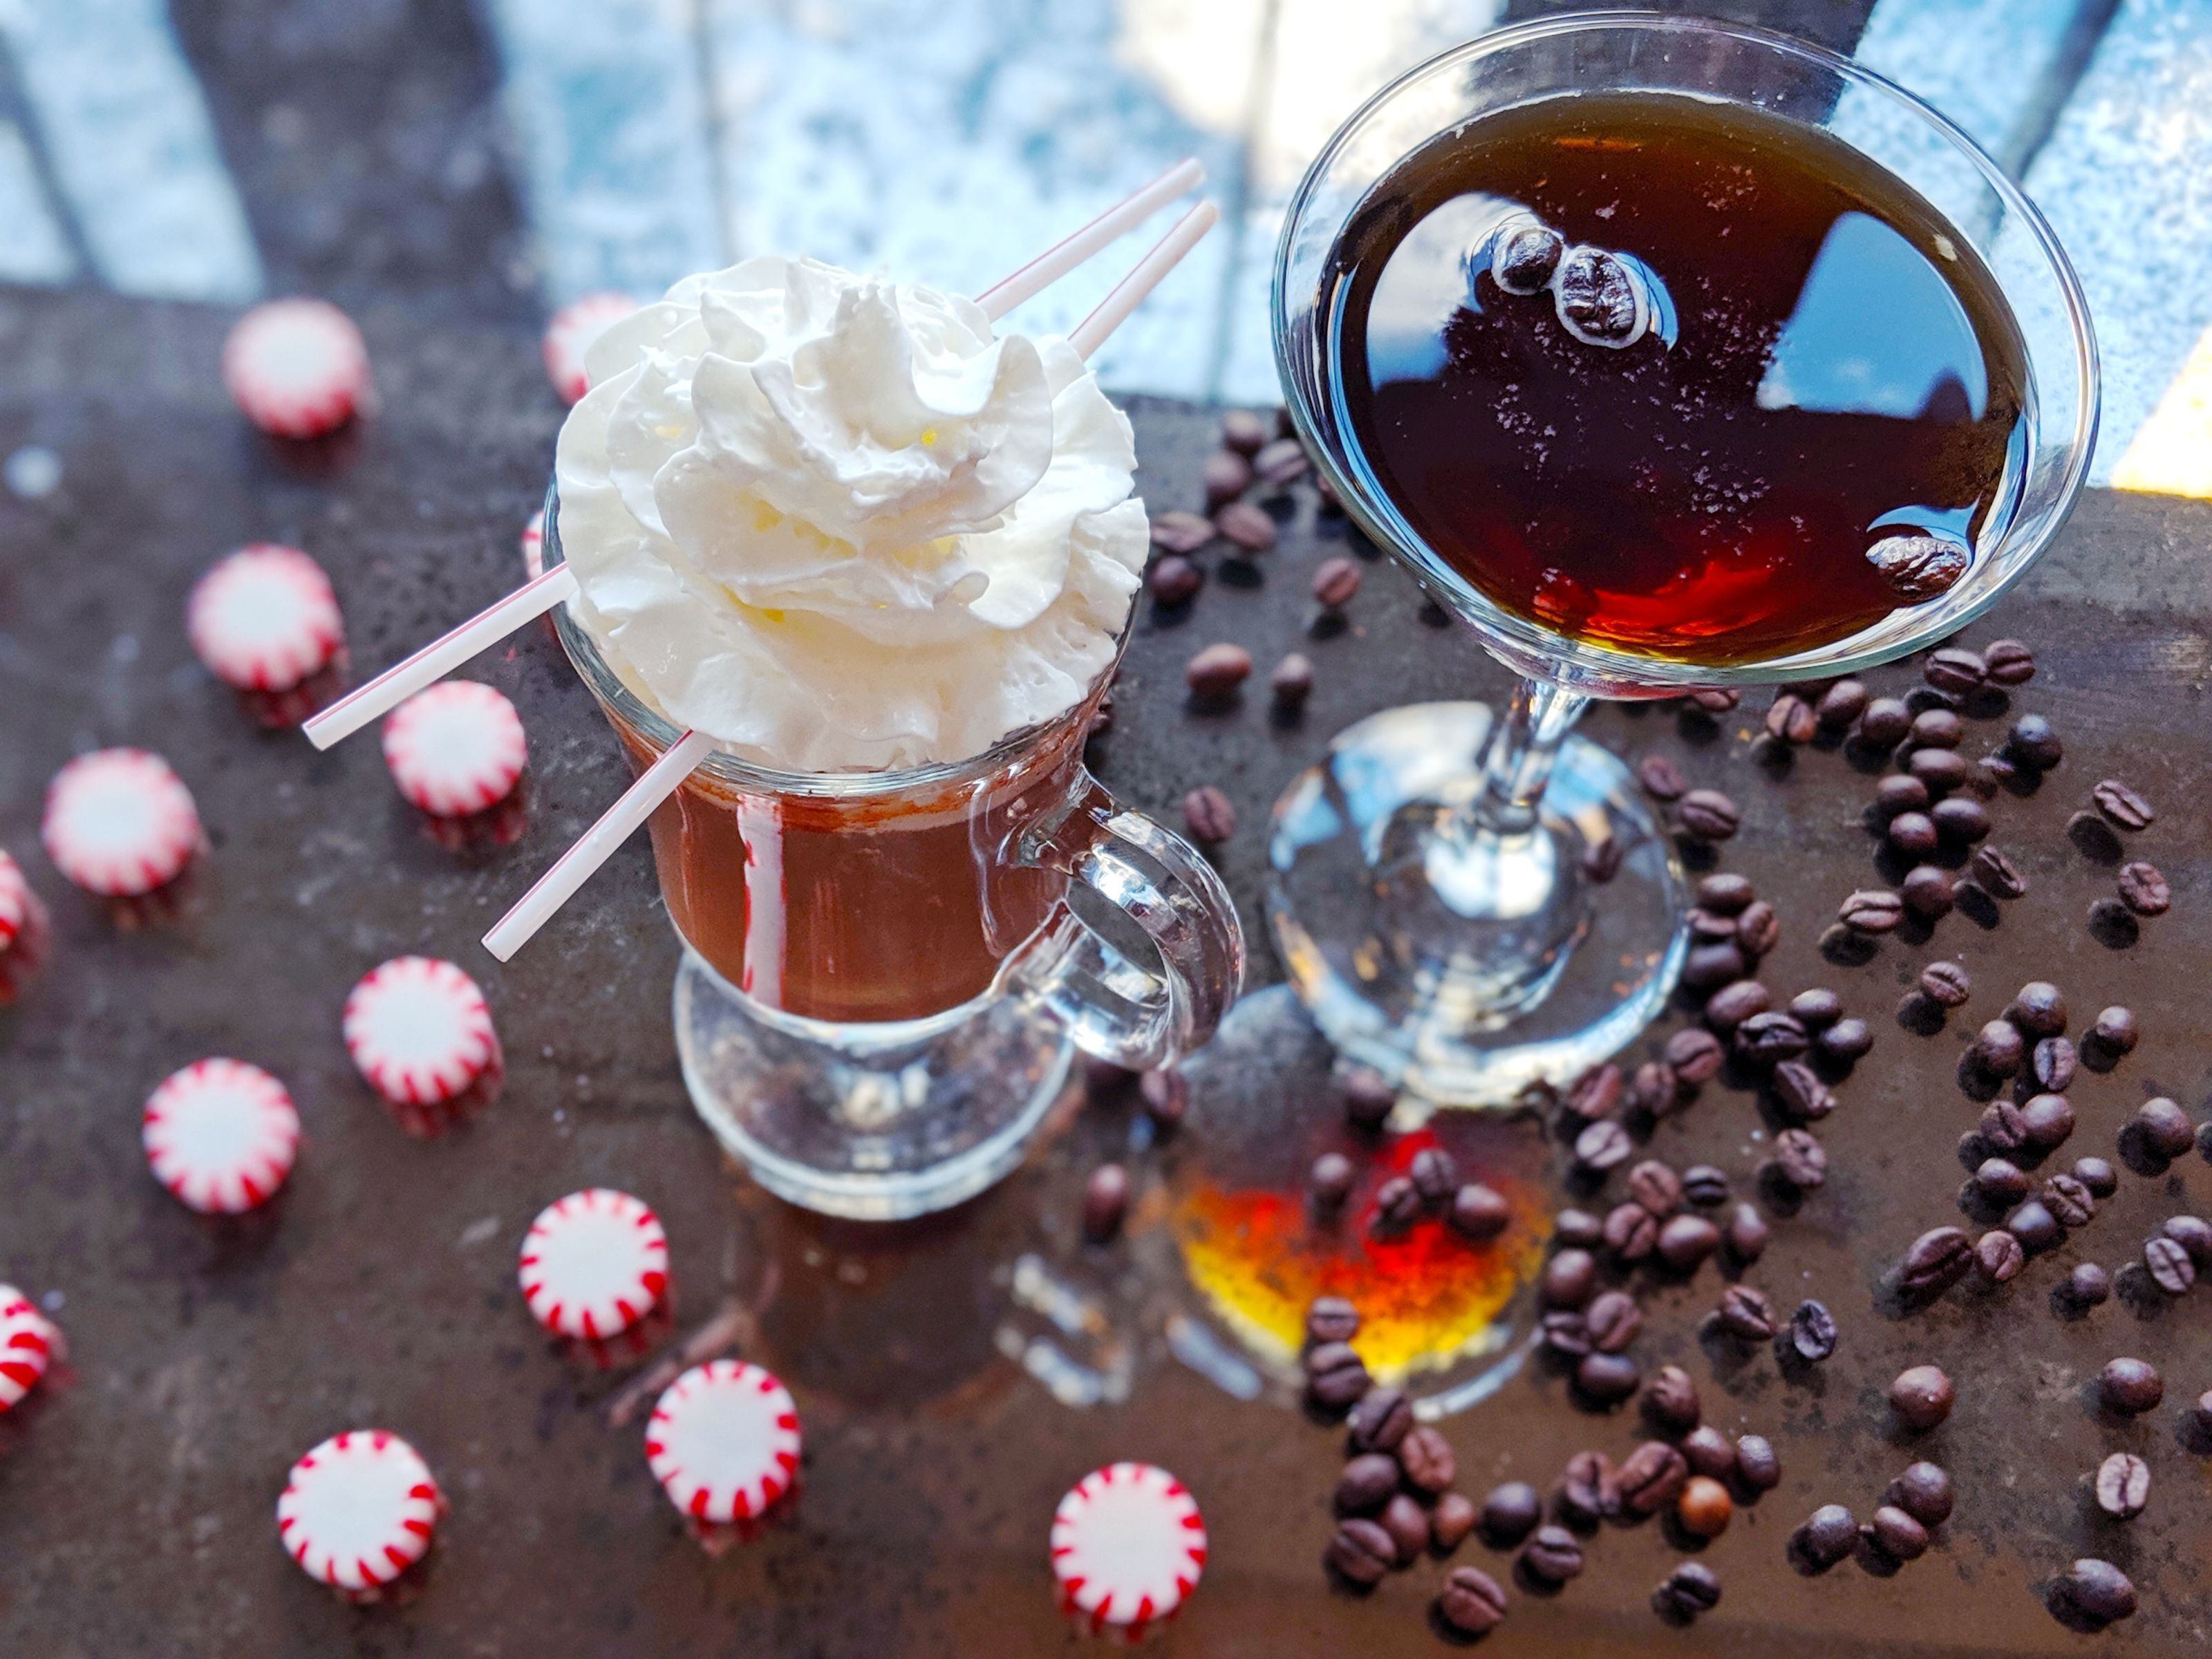 Naughty or nice, you'll definitely sip these cocoa cocktails twice